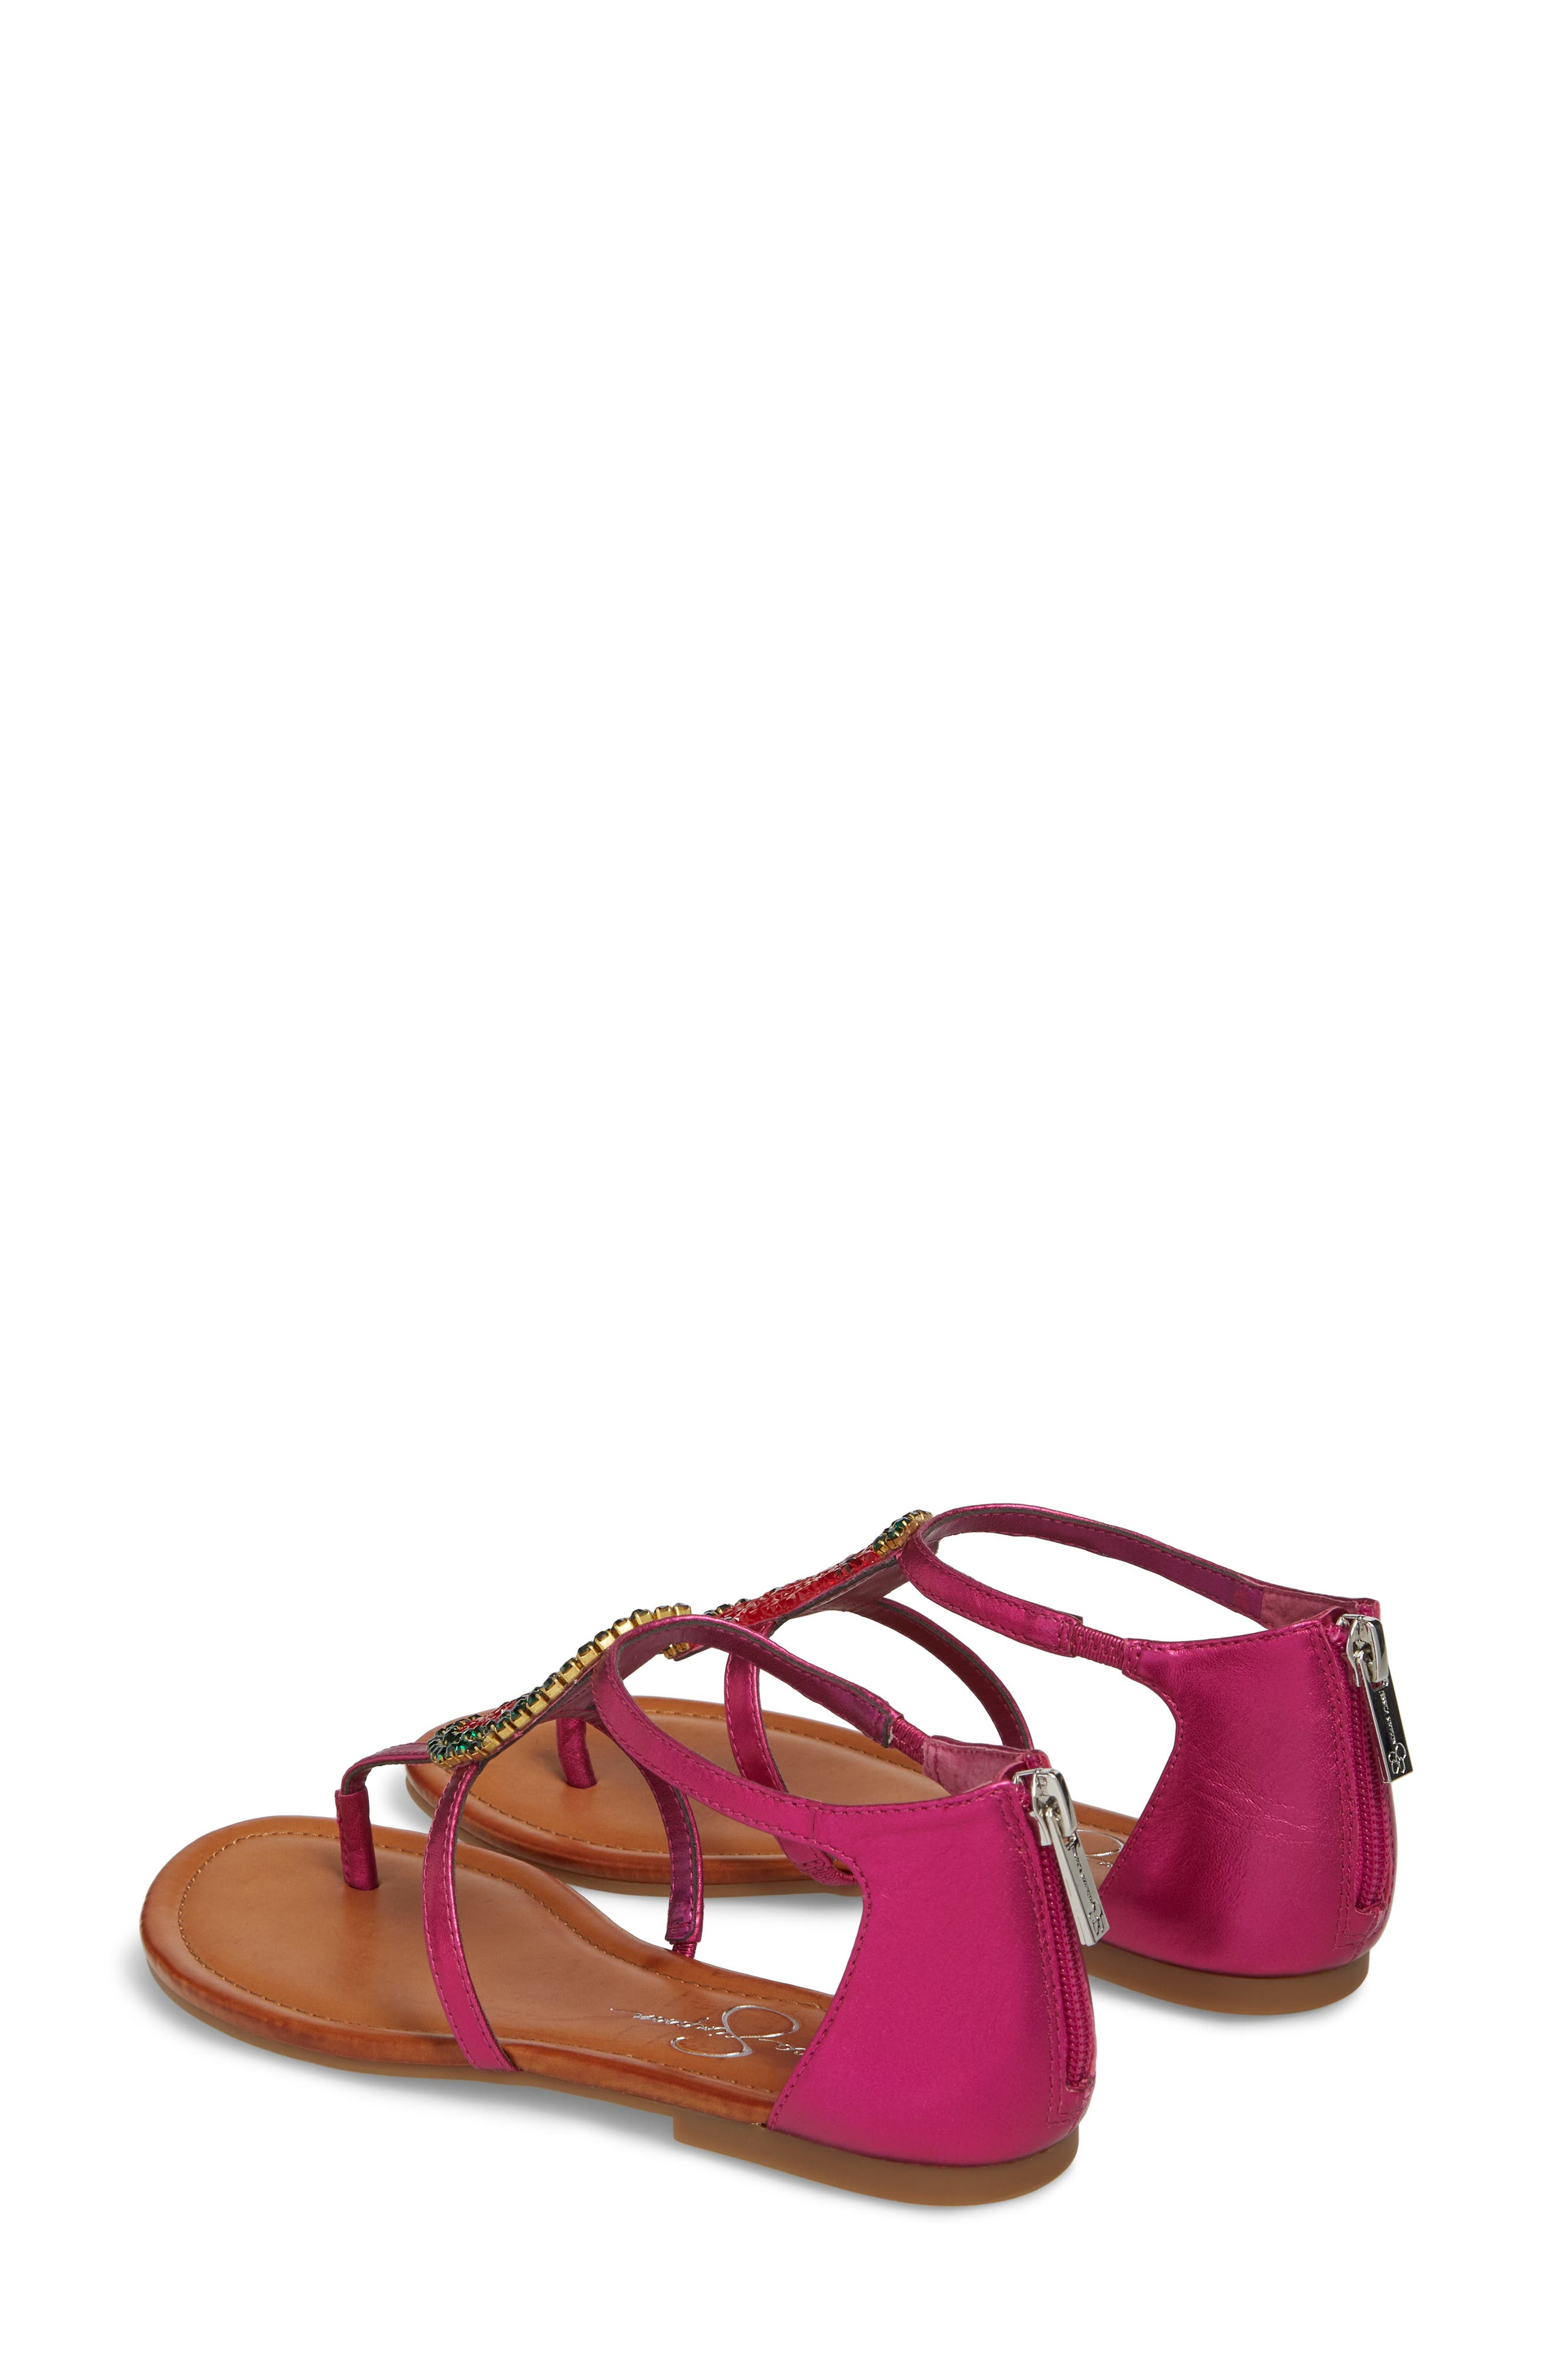 Jessica Simpson Women's Konnie Crystal Watermelon Embellished Sandal